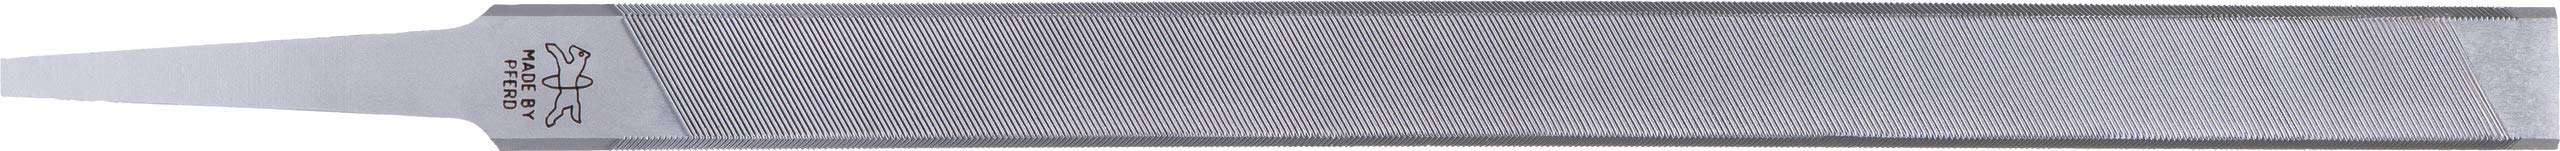 PFERD 17082 Chisel Bit Chain Saw Sharpening File, Flat Shape, 7'' Length, 0.325'', Chain Pitch (Pack of 12)